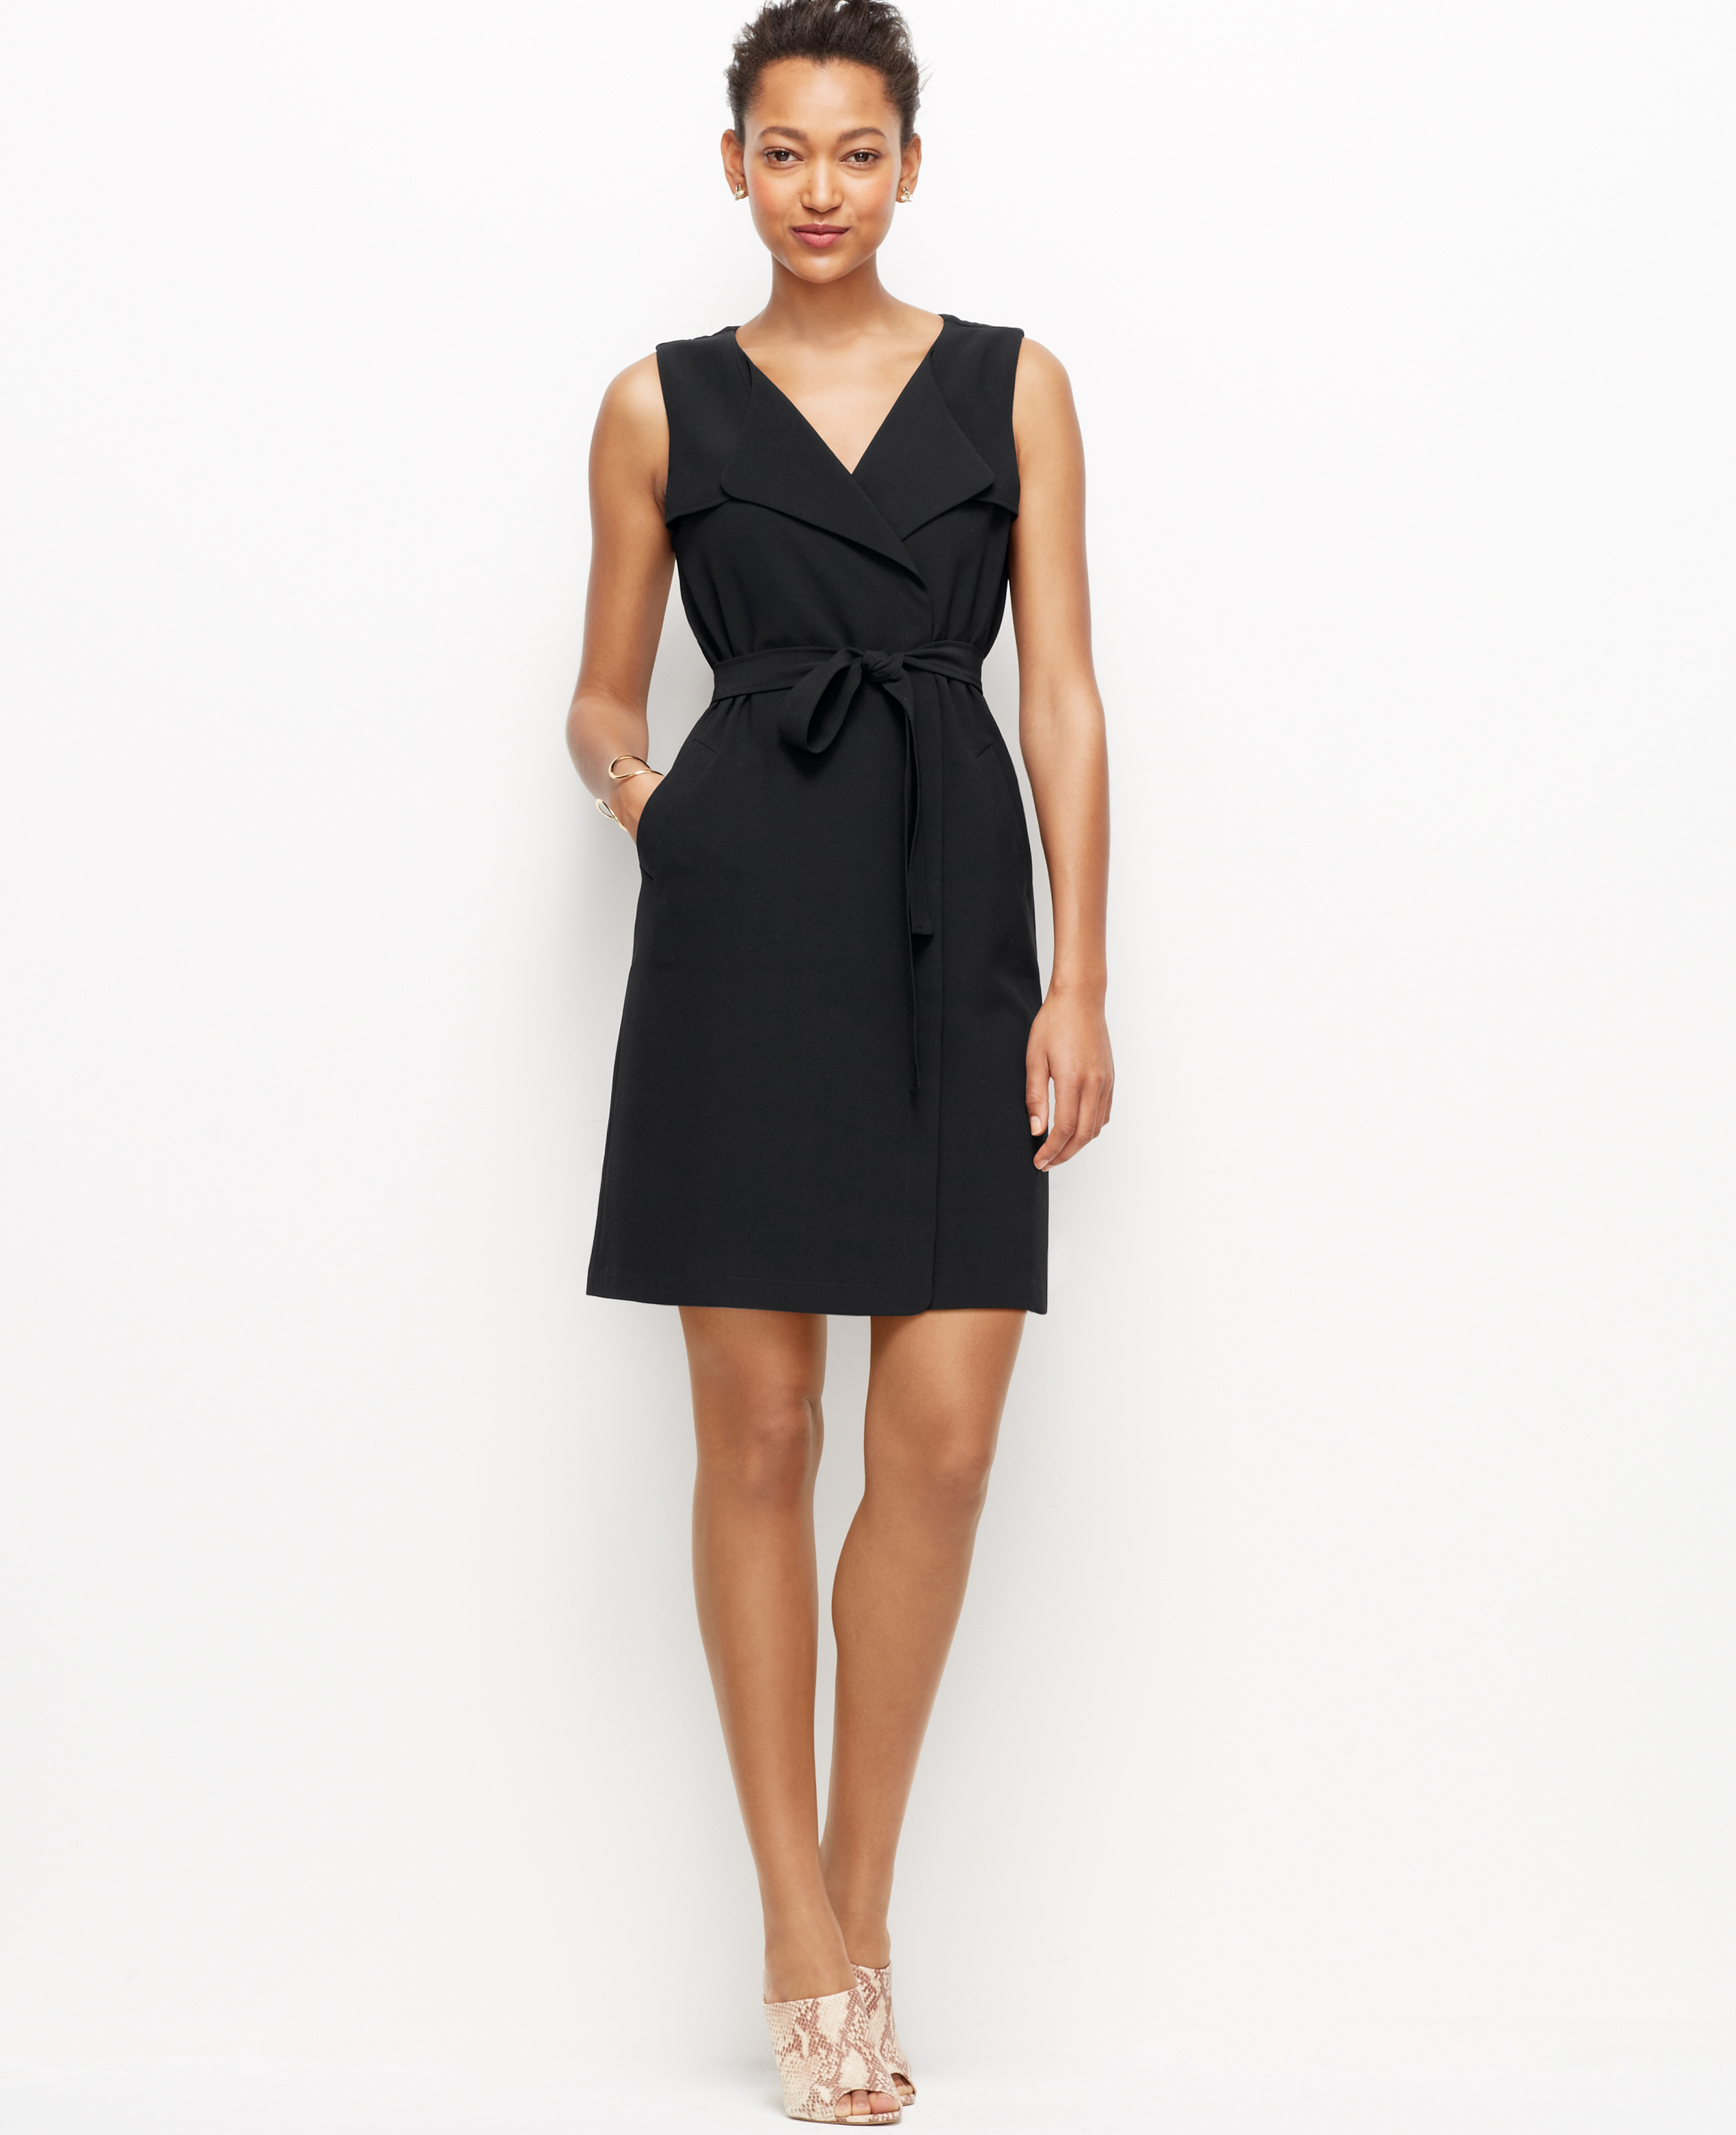 Lyst - Ann Taylor Petite Trench Wrap Dress in Black